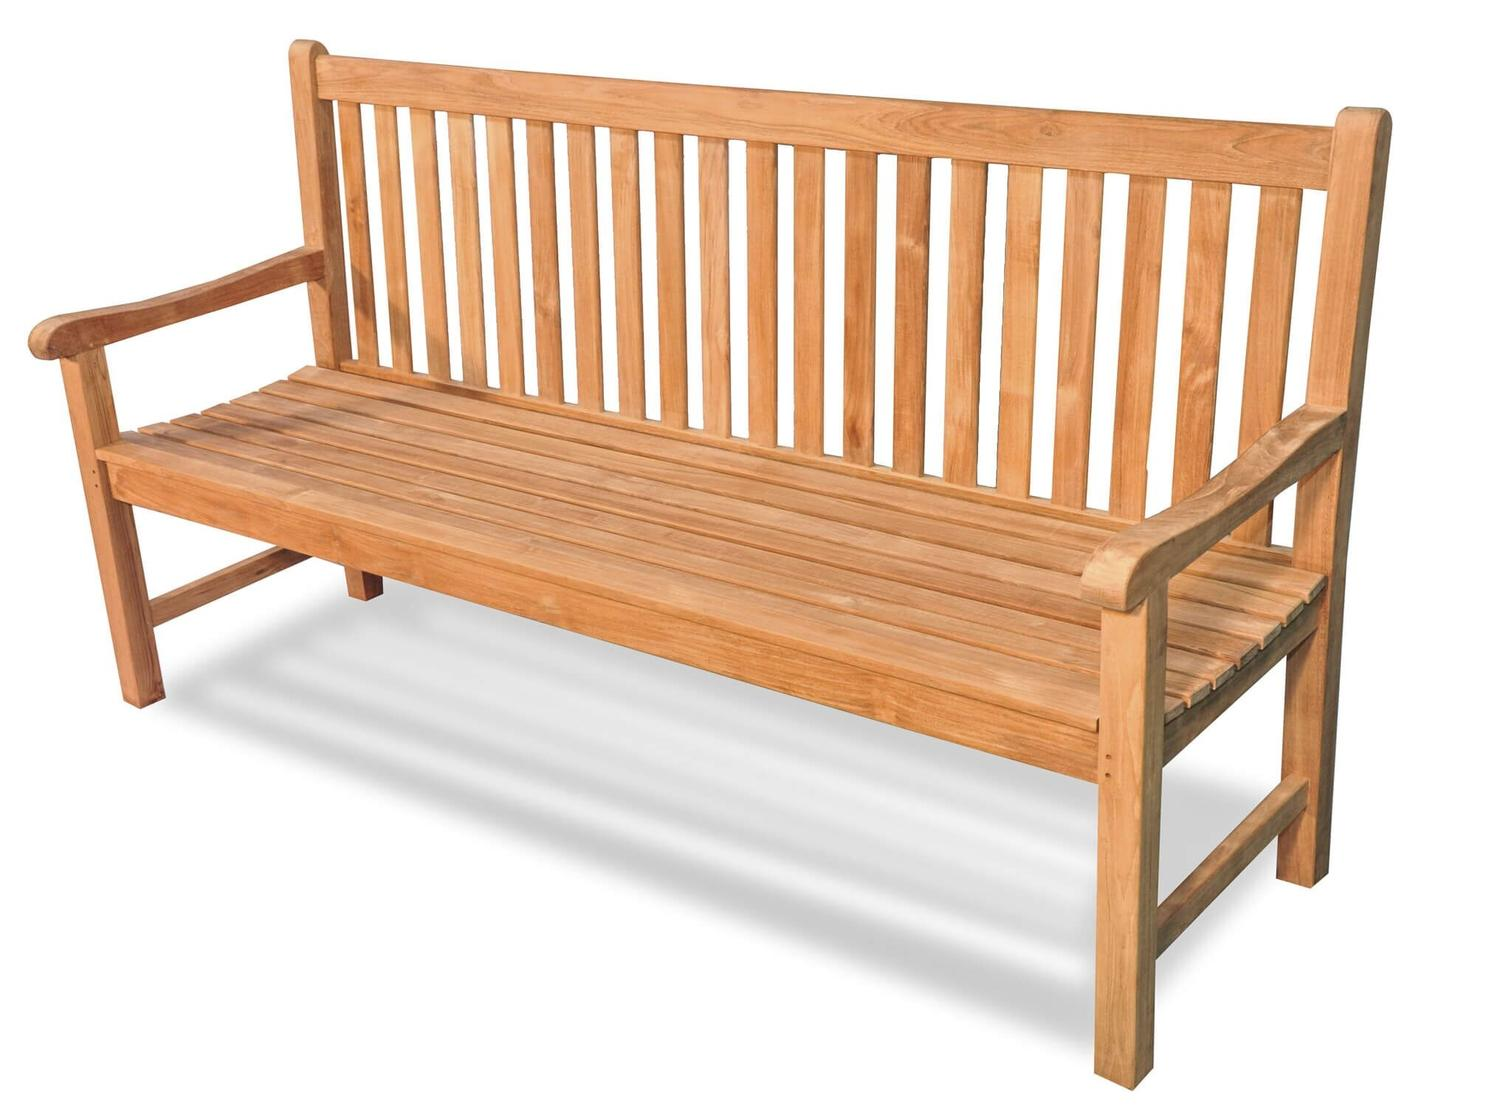 Remarkable 70 Natural Teak Outdoor Patio Block Island Wooden Bench Onthecornerstone Fun Painted Chair Ideas Images Onthecornerstoneorg